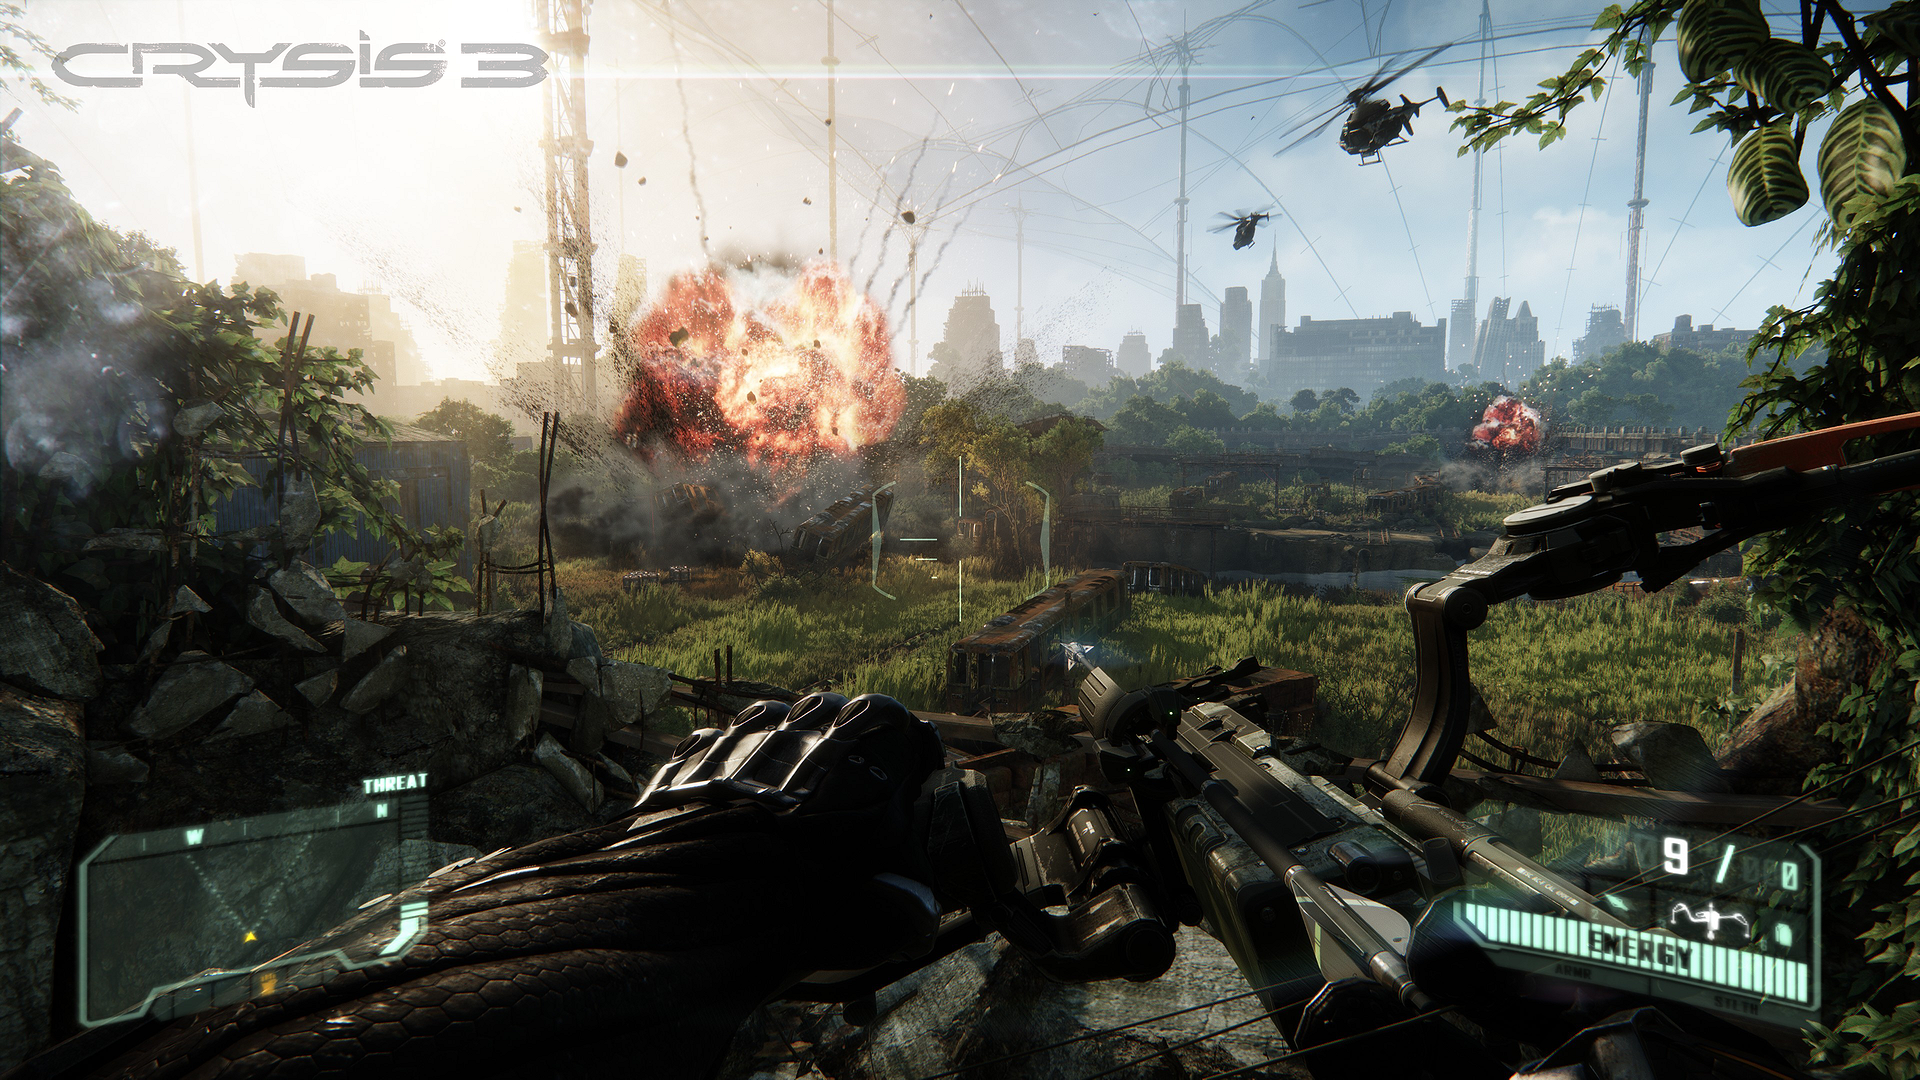 Crysis 3 Pictures